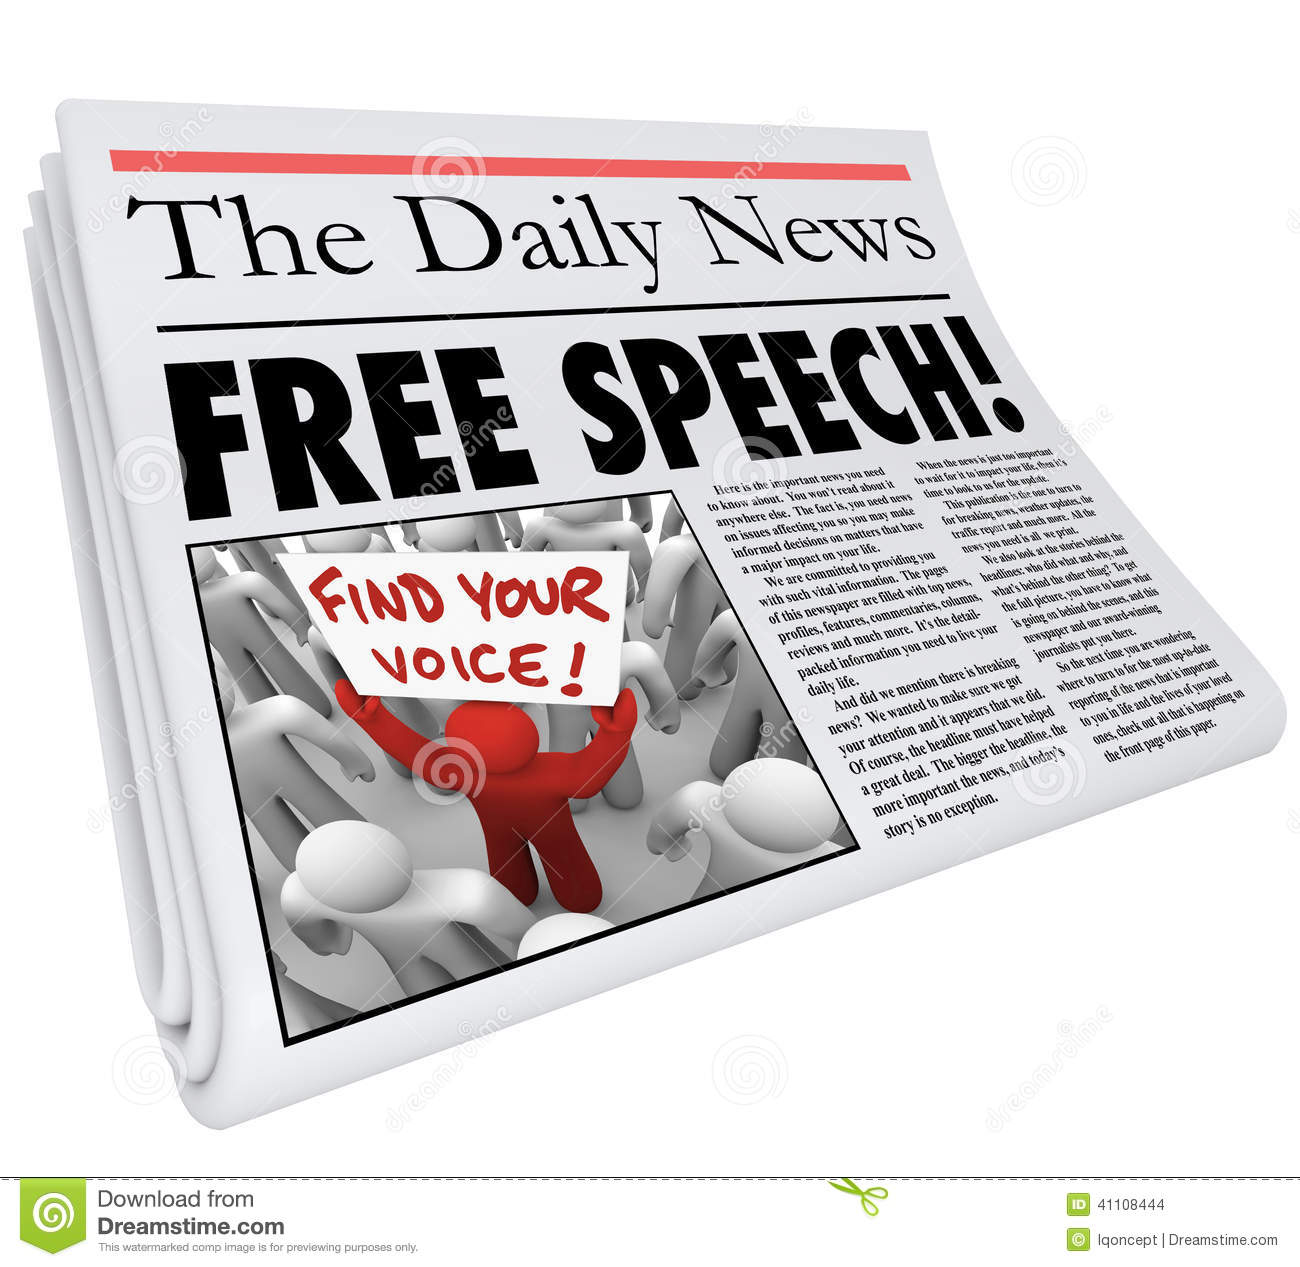 Free Speech Words In A Newspaper Headline To Illustrate Freedom Of